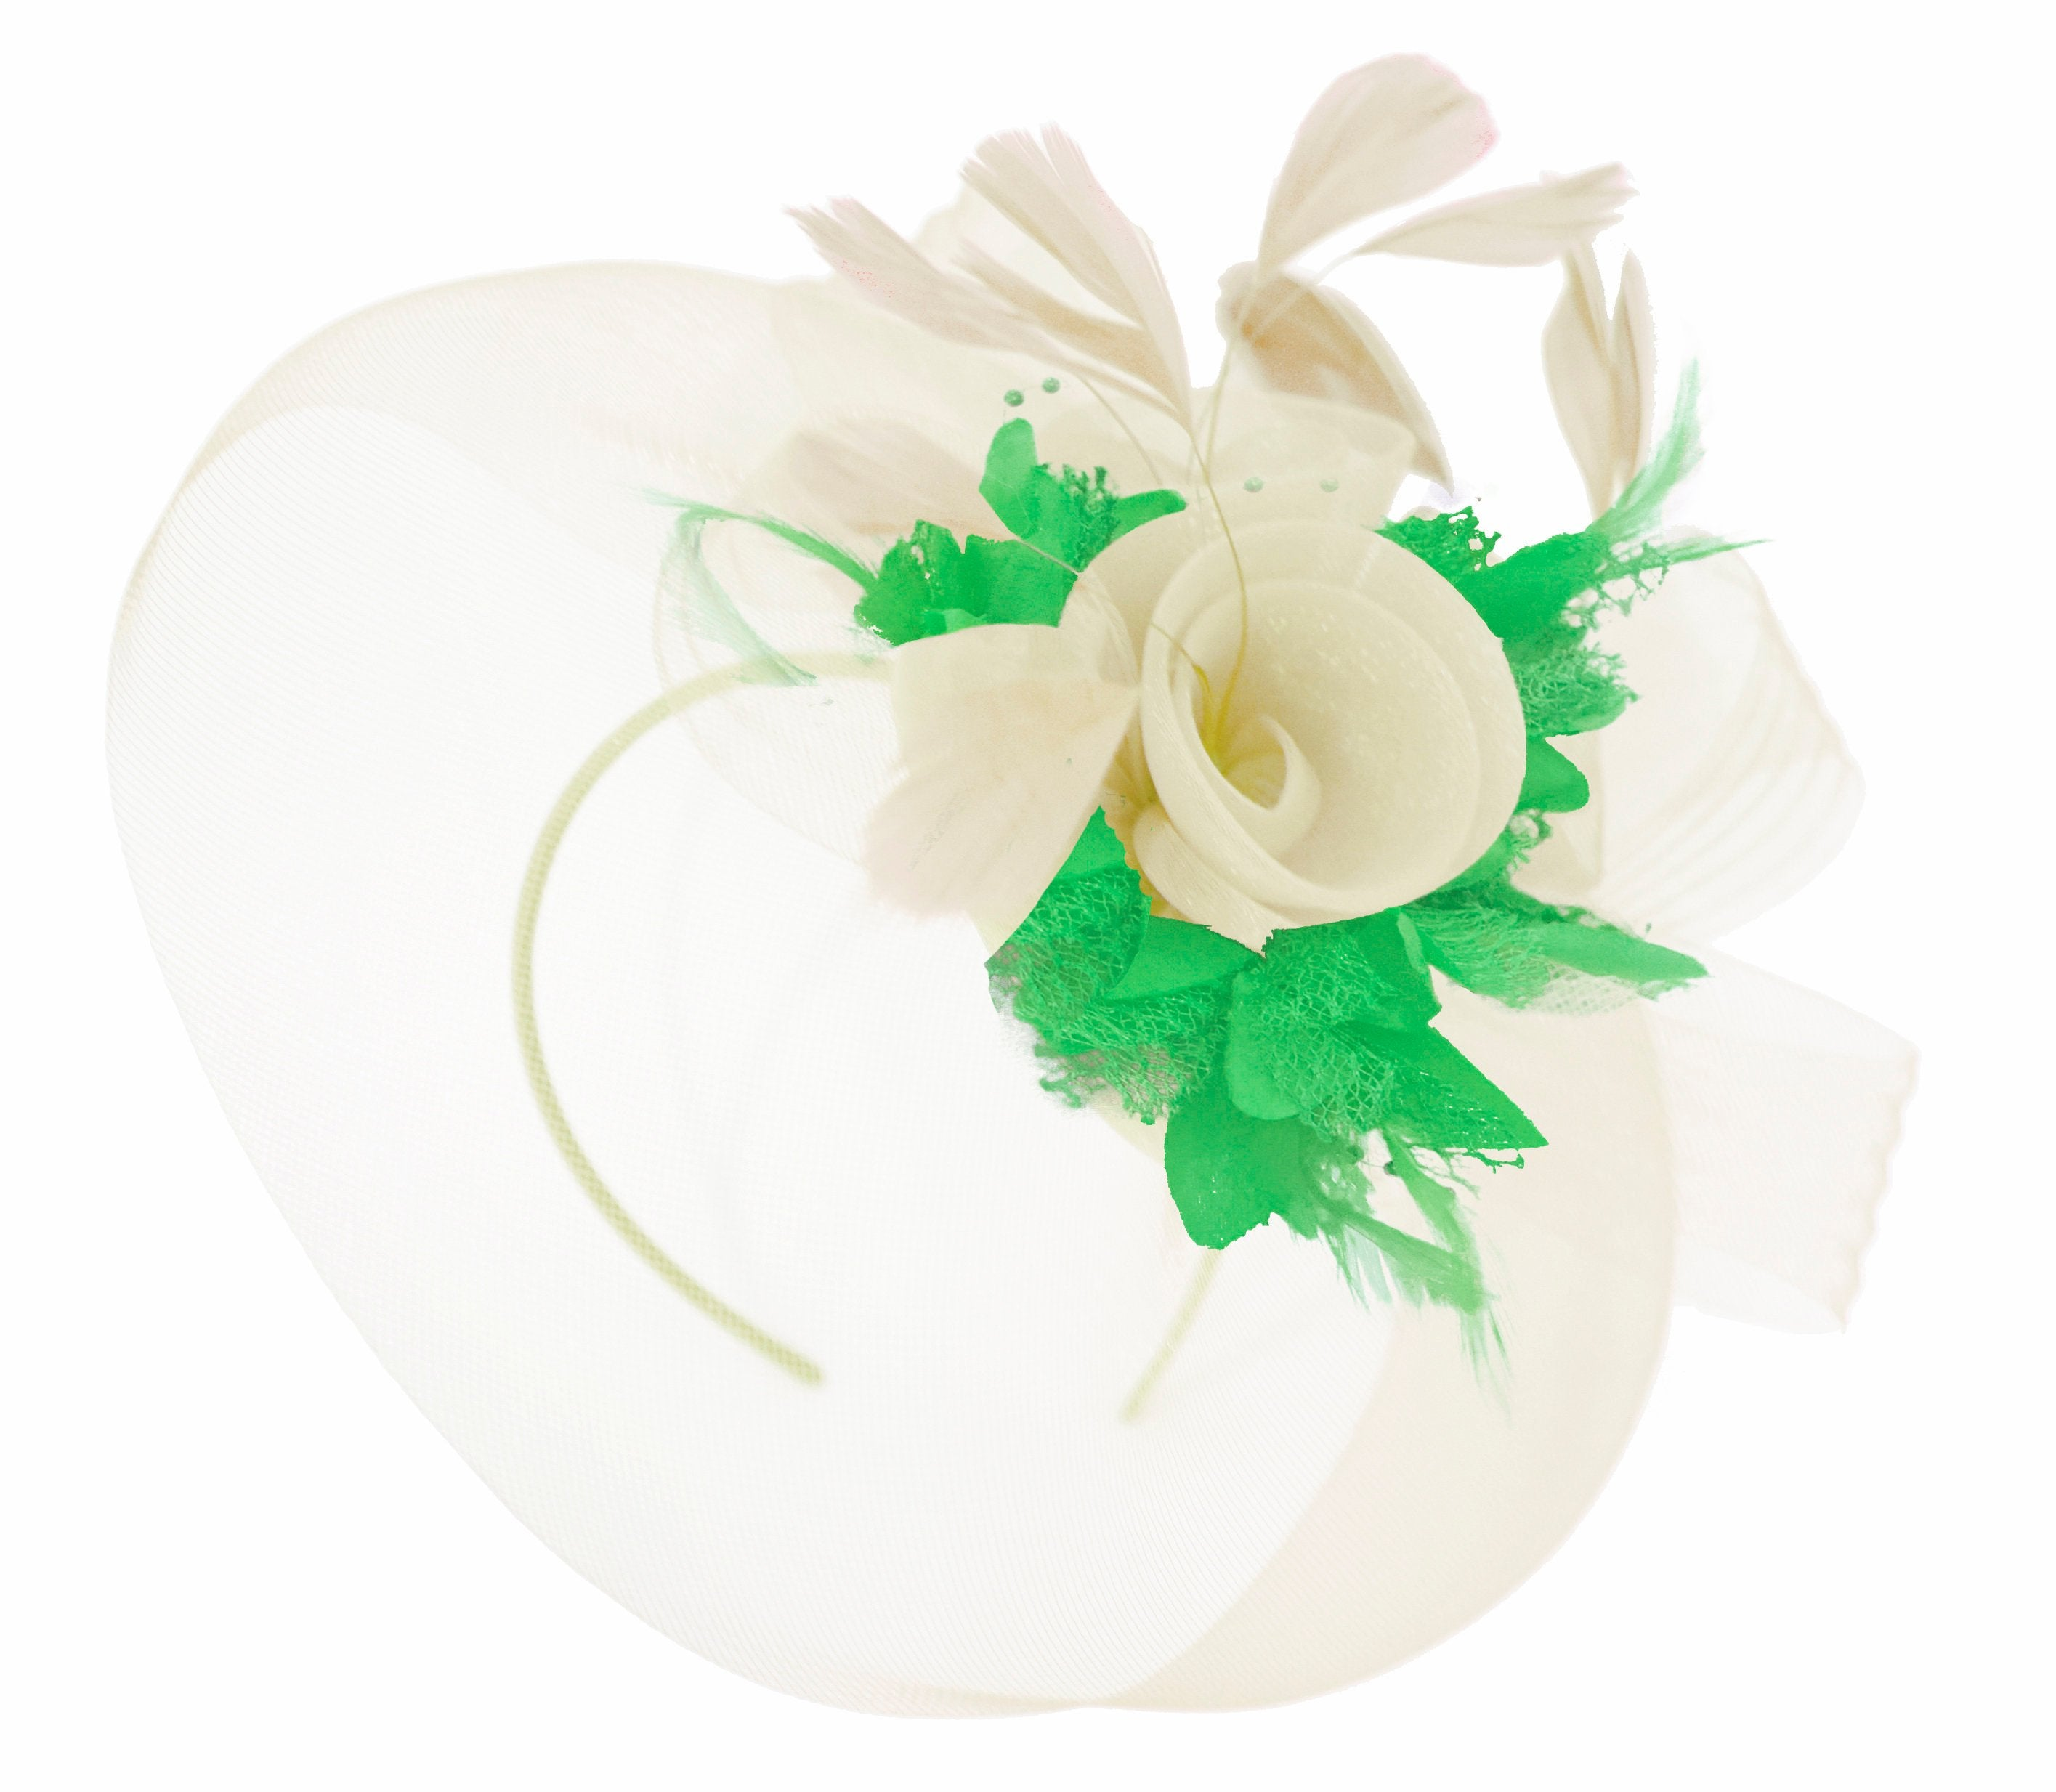 Caprilite Cream and Grass Green Fascinator on Headband Veil UK Wedding Ascot Races Hatinator Women